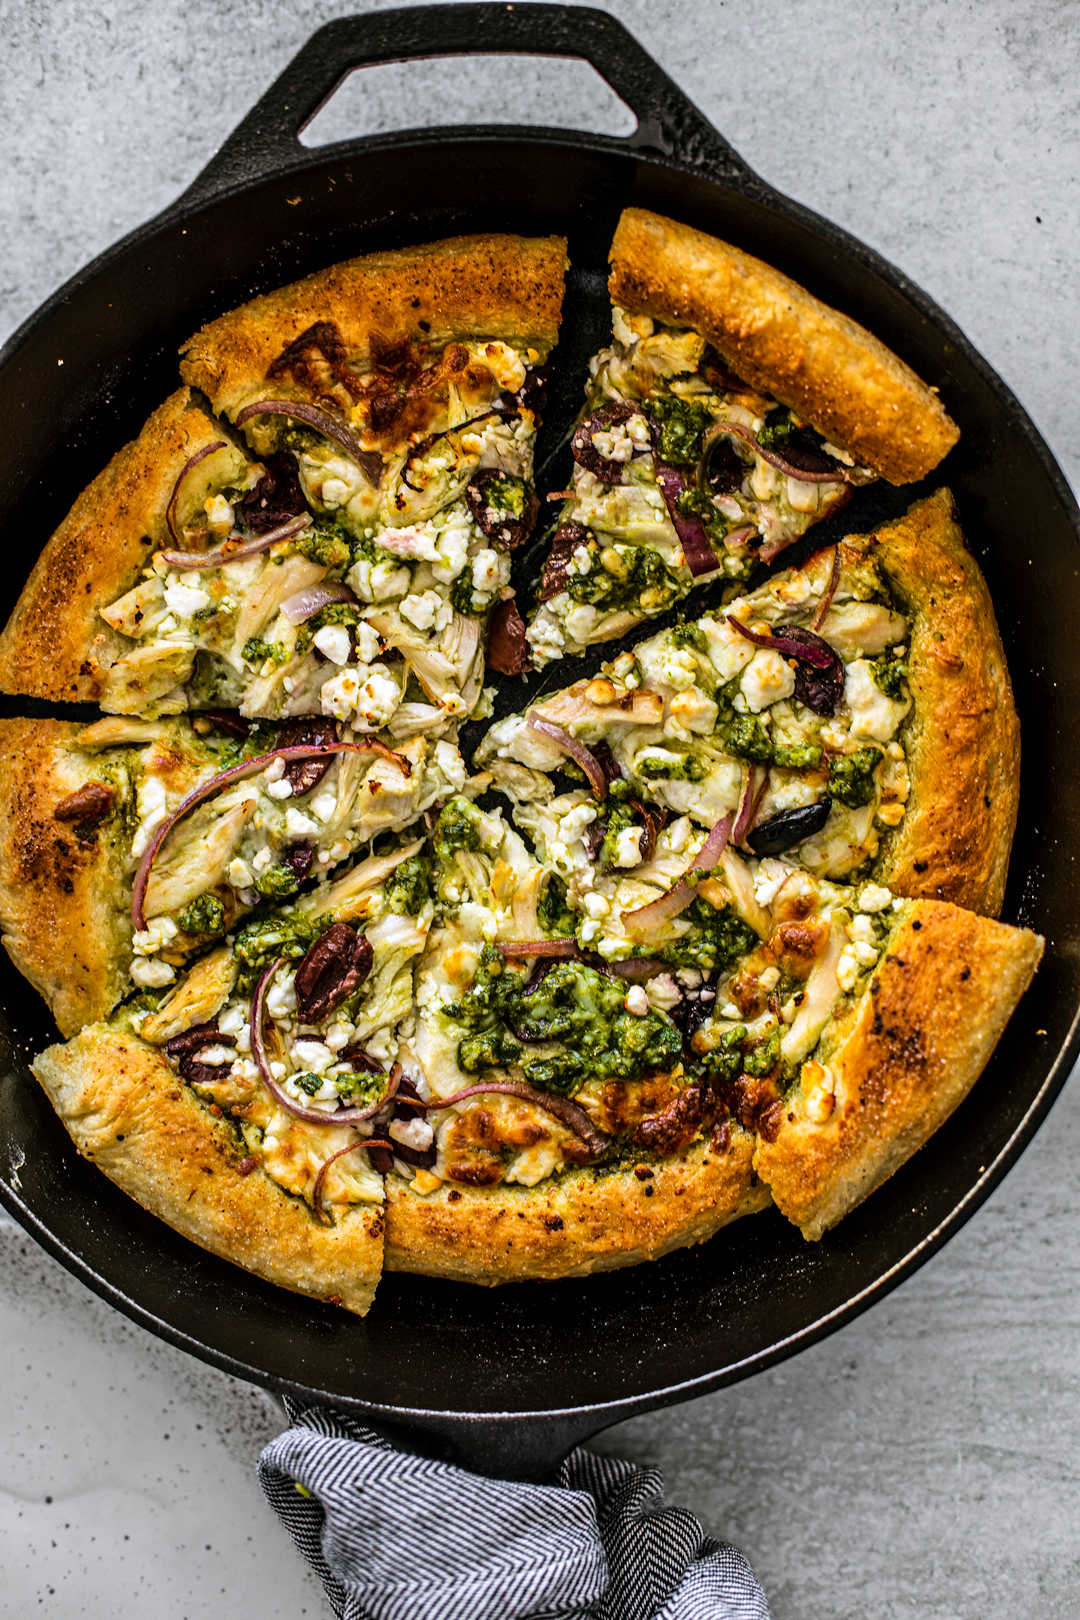 Skillet with chicken pesto pizza cut into slices.